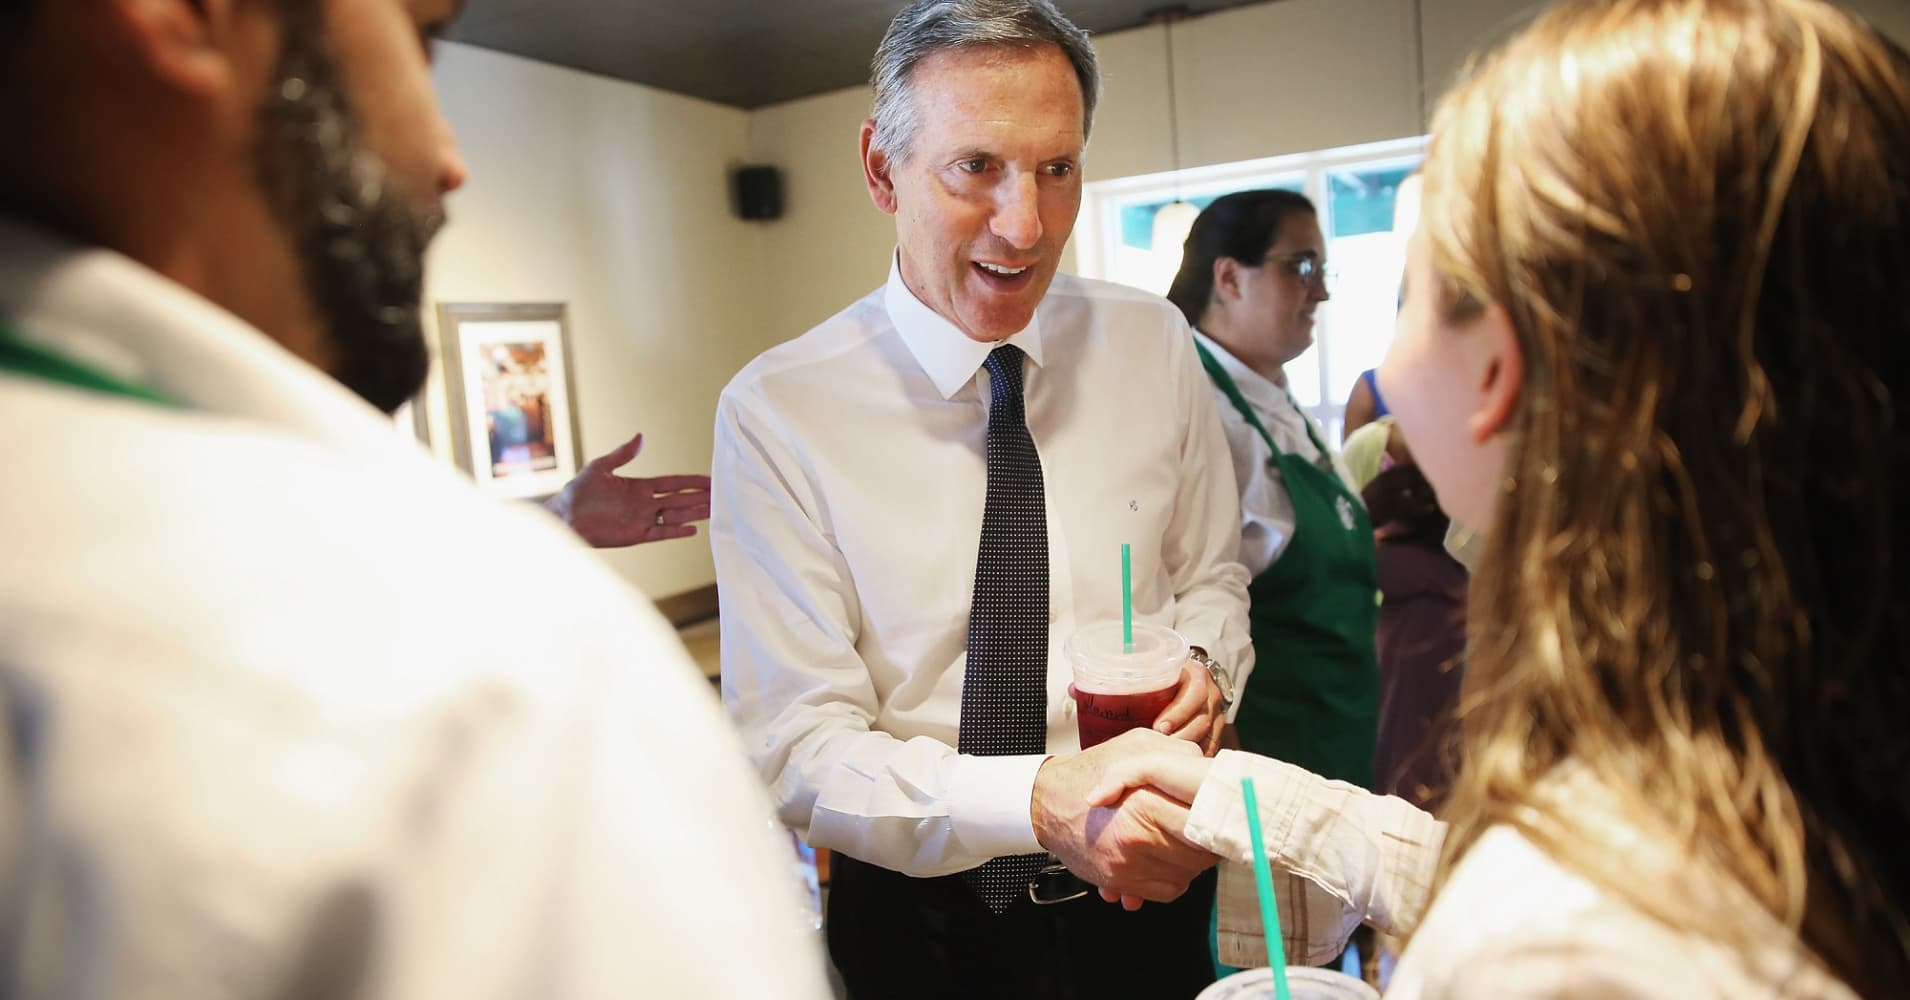 Howard Schultz likely to visit early primary states as he considers running for president